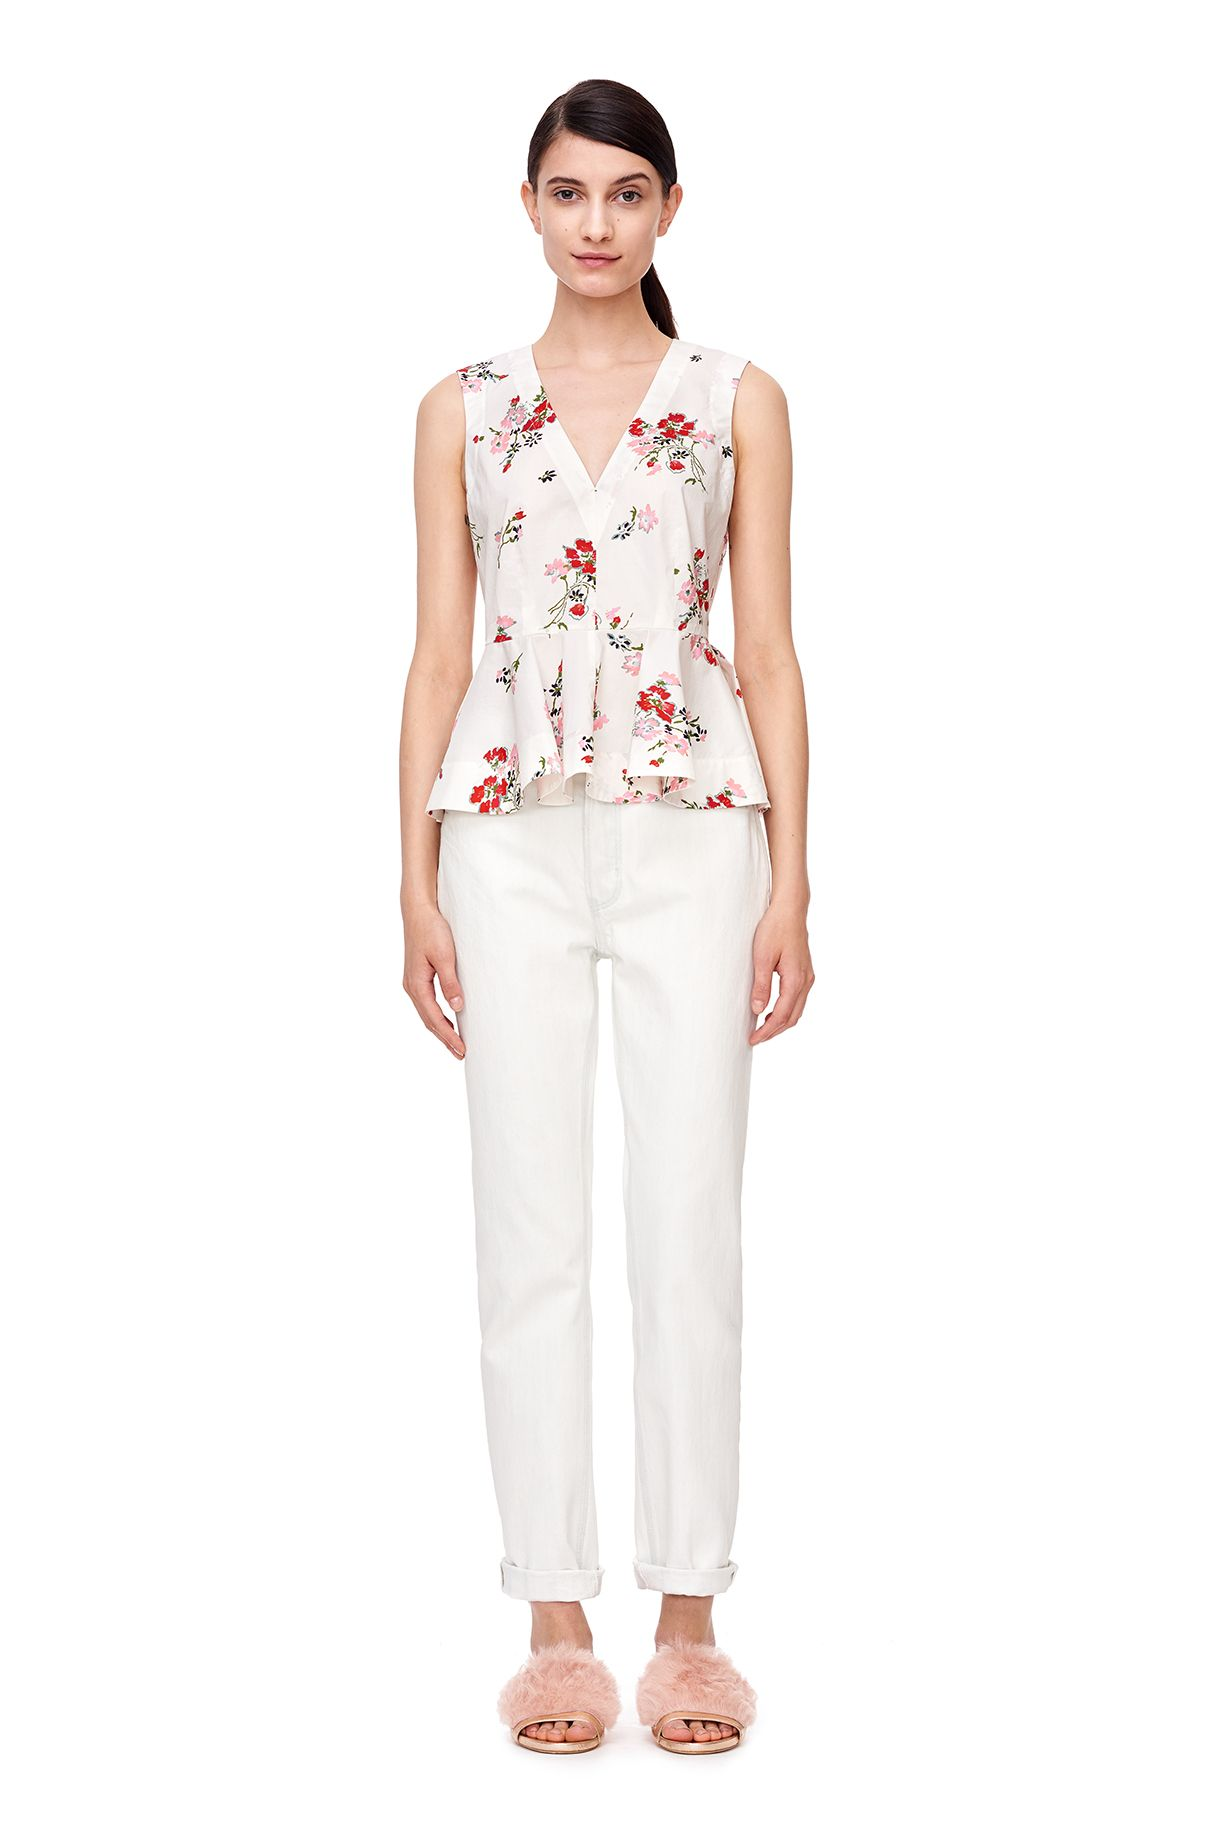 A bold floral top with peplum in cotton poplin. Rebecca Taylor